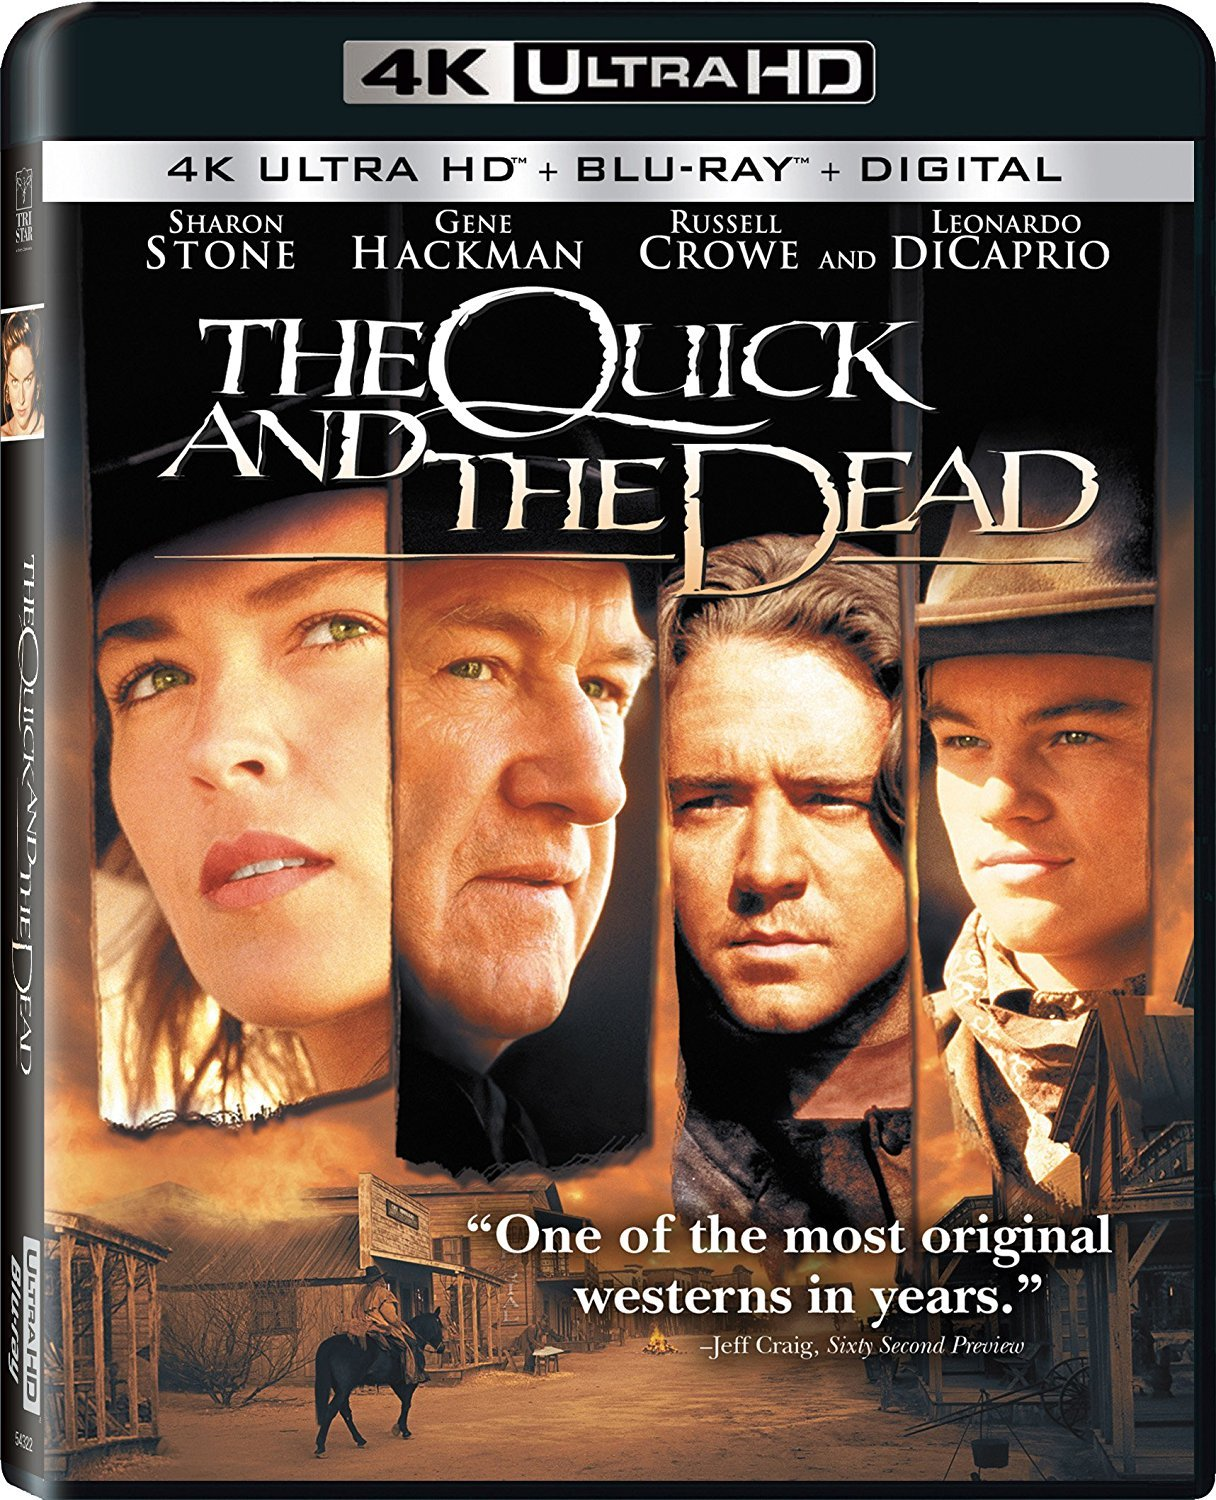 The Quick and the Dead 4K (1995) Ultra HD Blu-ray